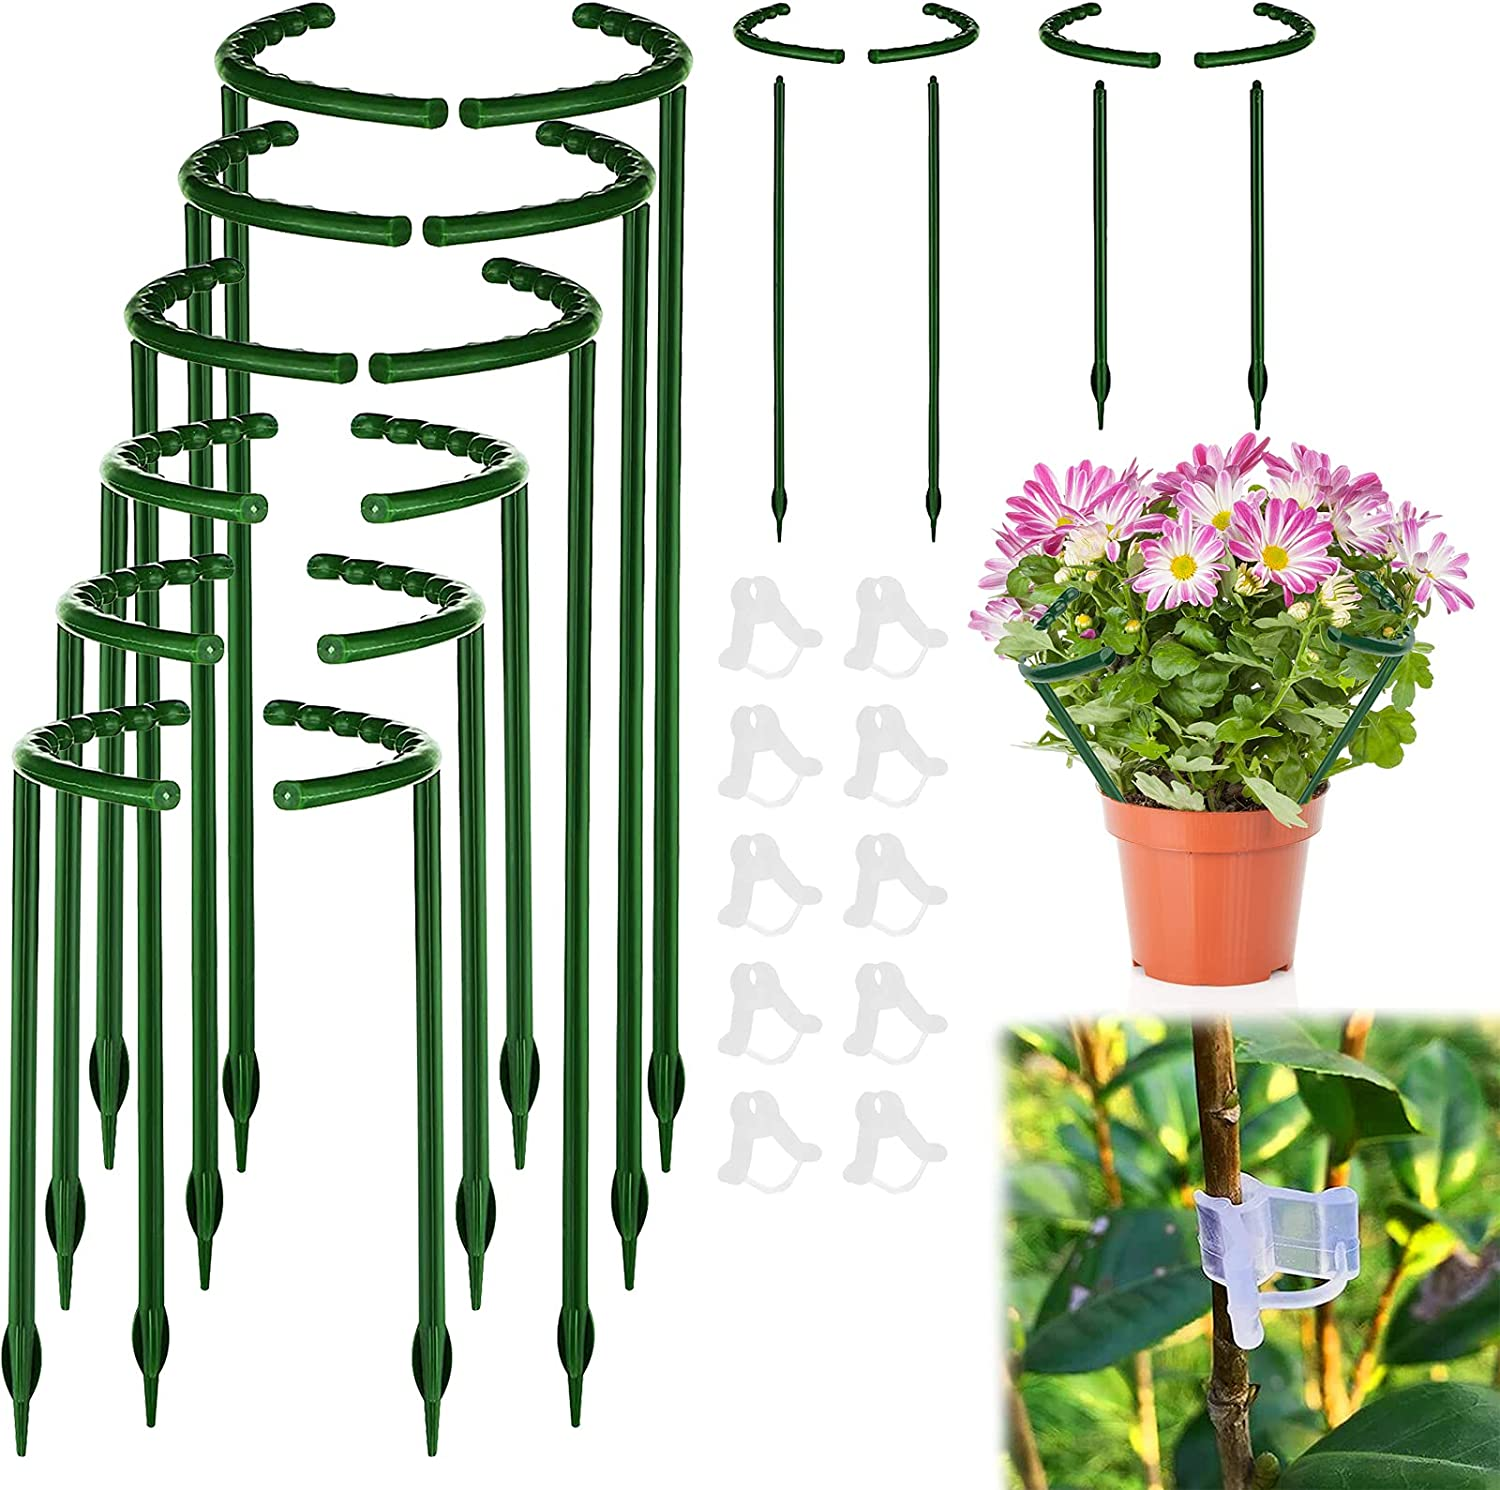 Broadsheet 12 Pack Plant Support Stakes, Half Round Plant Support Ring and 10 Plant Clips, Garden Flower Plant Cage Holder Outdoor Plant Support Stake for Peony, Rose Vegetable, Hydrangea, Vine